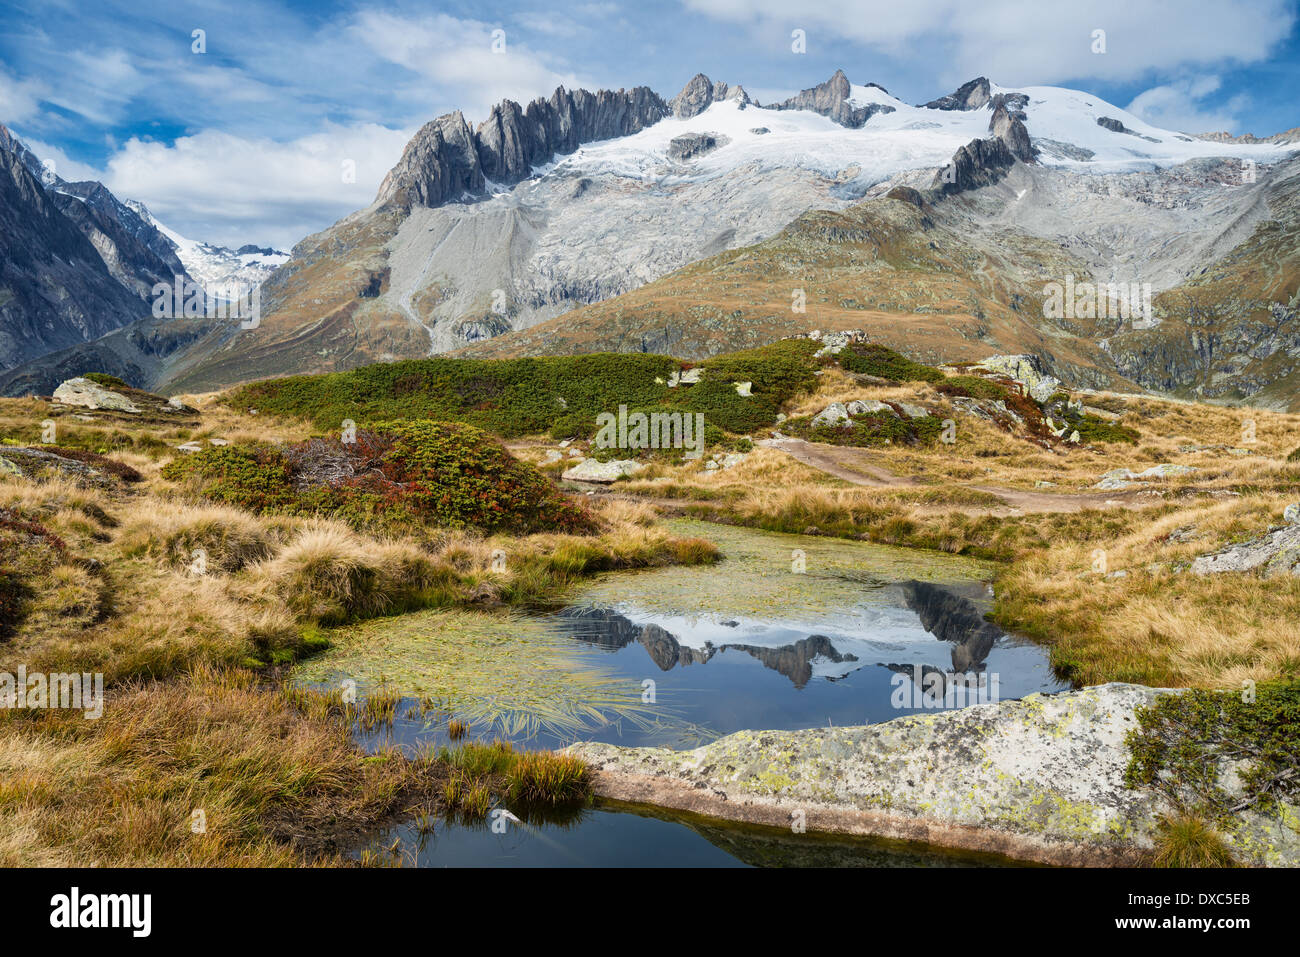 Mountain landscape with water reflection near Riederalp, Valais, Swiss Alps, Switzerland, Europe - Stock Image